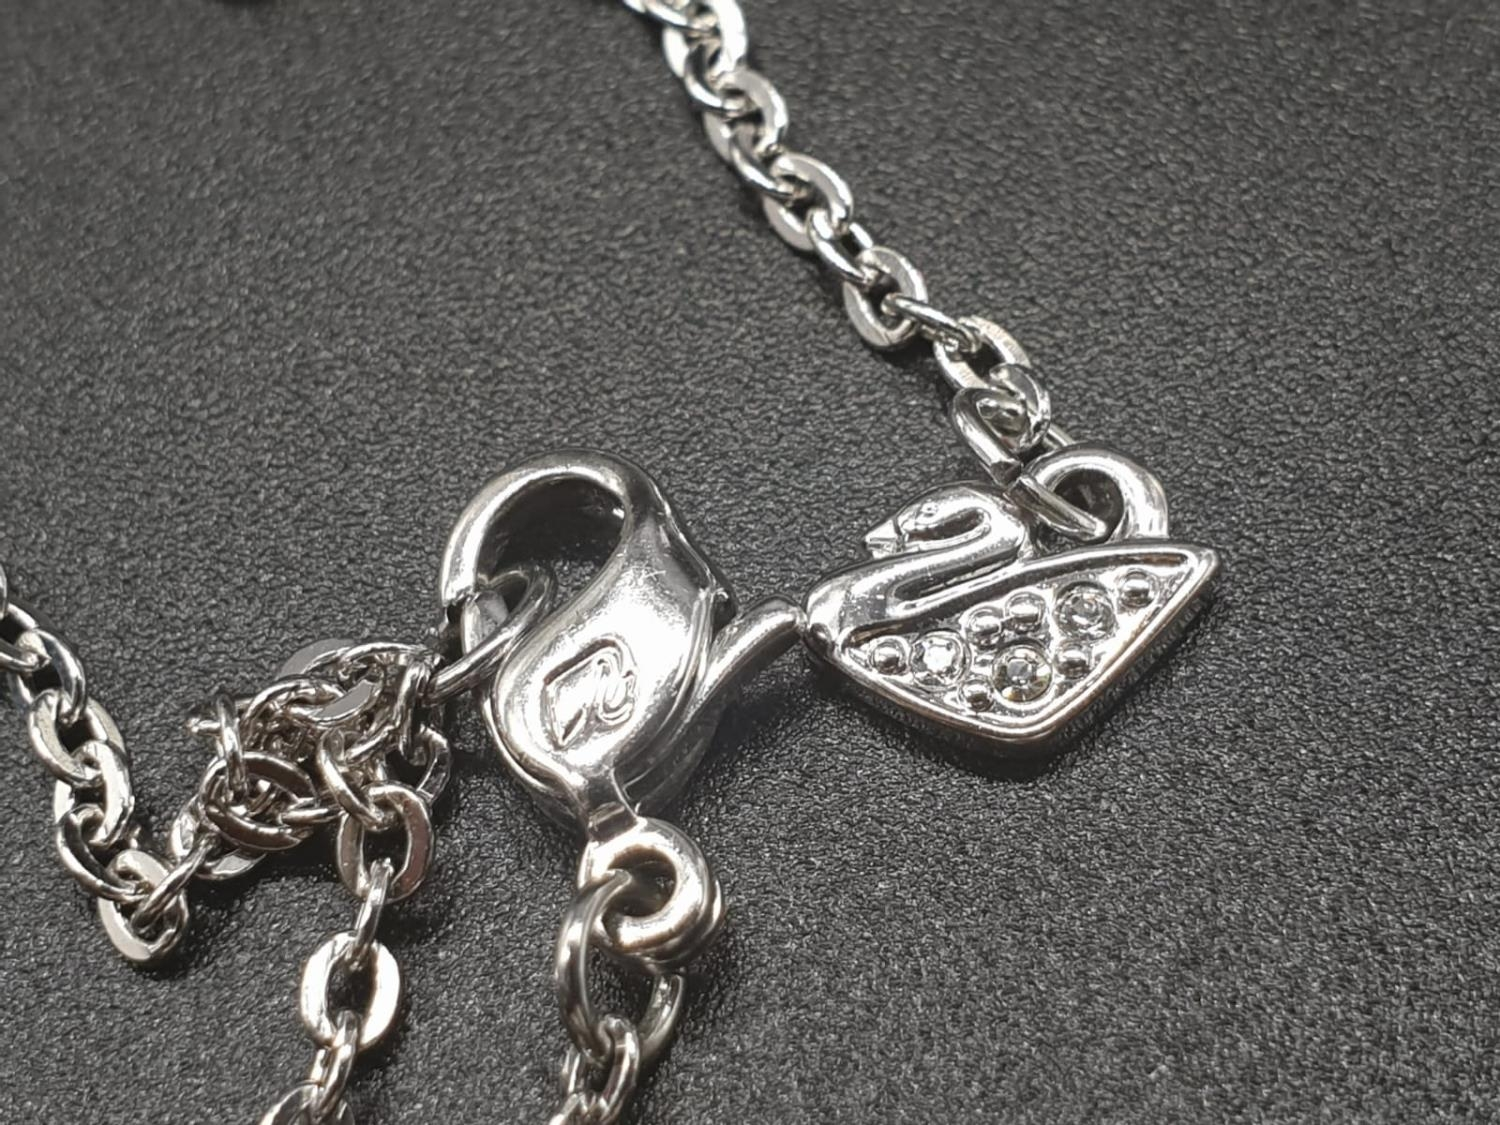 Swarovski Women's Metallic Active Crystal Heart-Shaped Pendant with built-in 8GB USB. 76cm As new, - Image 9 of 10